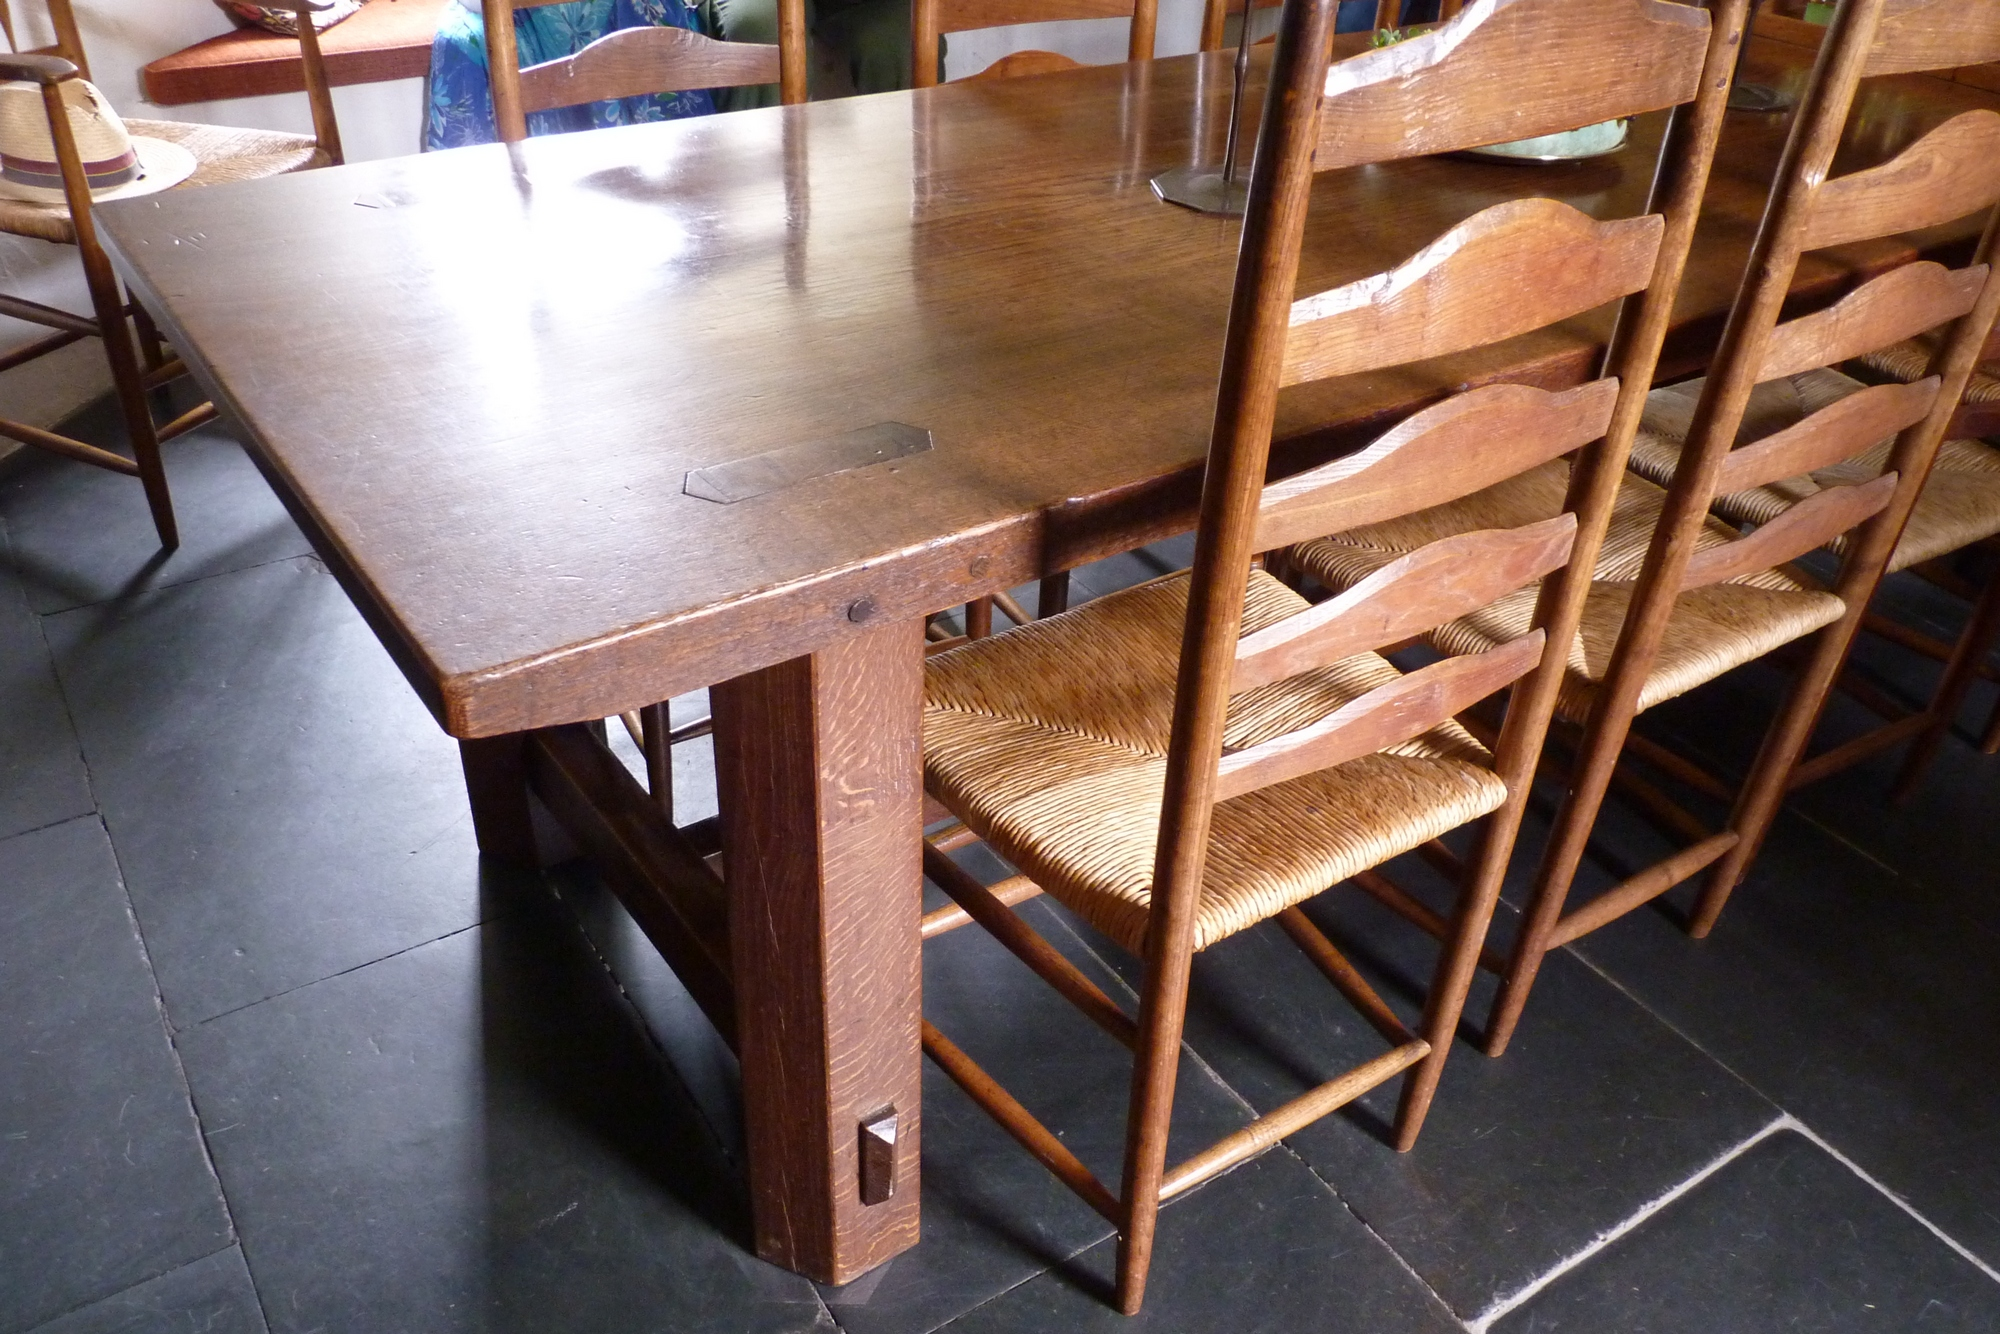 Filedining table by sidney barnsley stoneywell for Second hand dining table chairs sydney